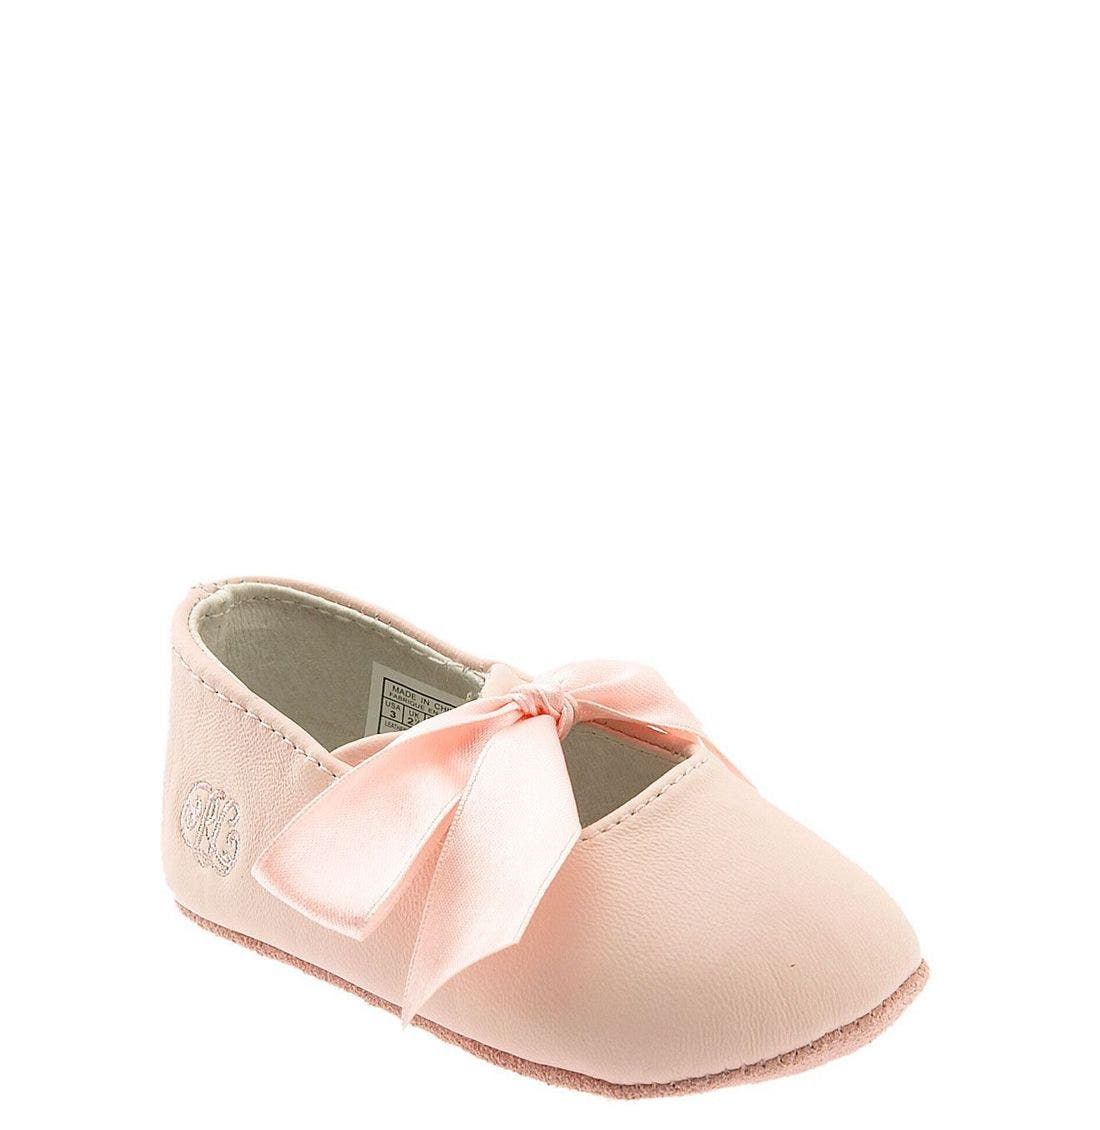 Layette 'Briley' Shoe,                             Main thumbnail 1, color,                             Pink Lambskin